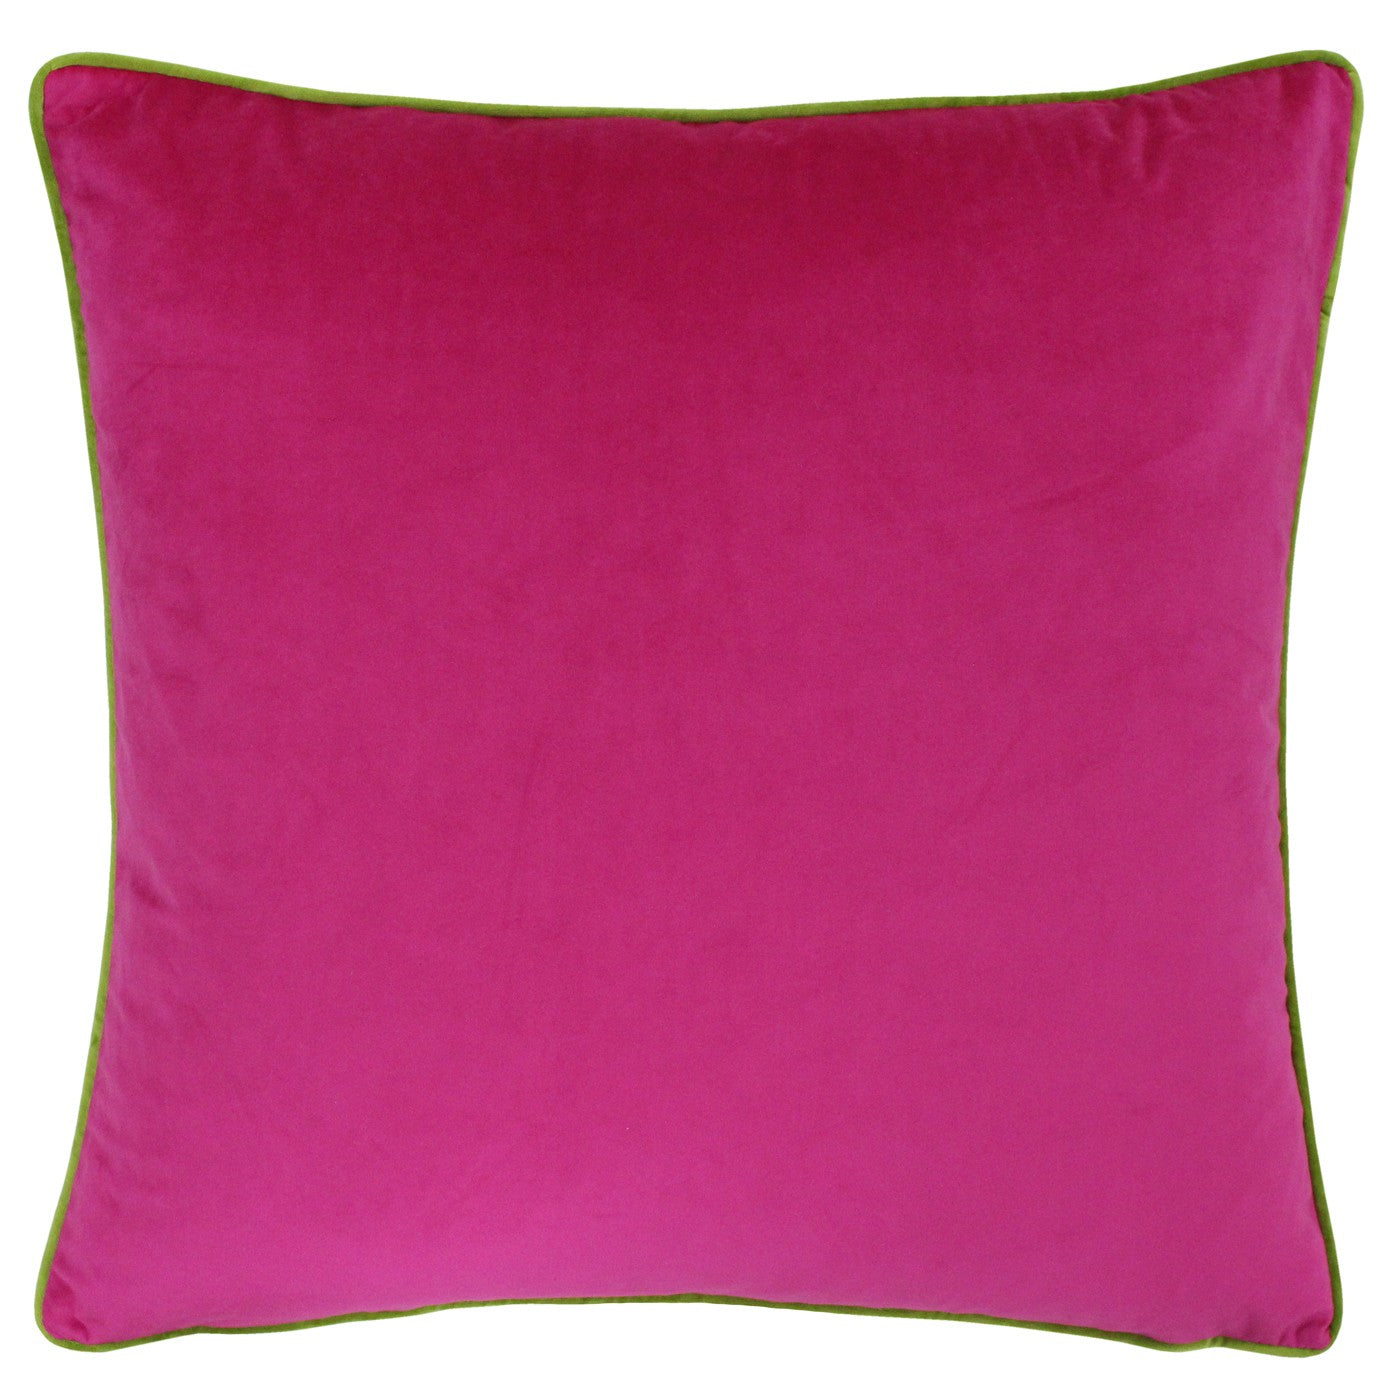 Large bright pink velvet cushion